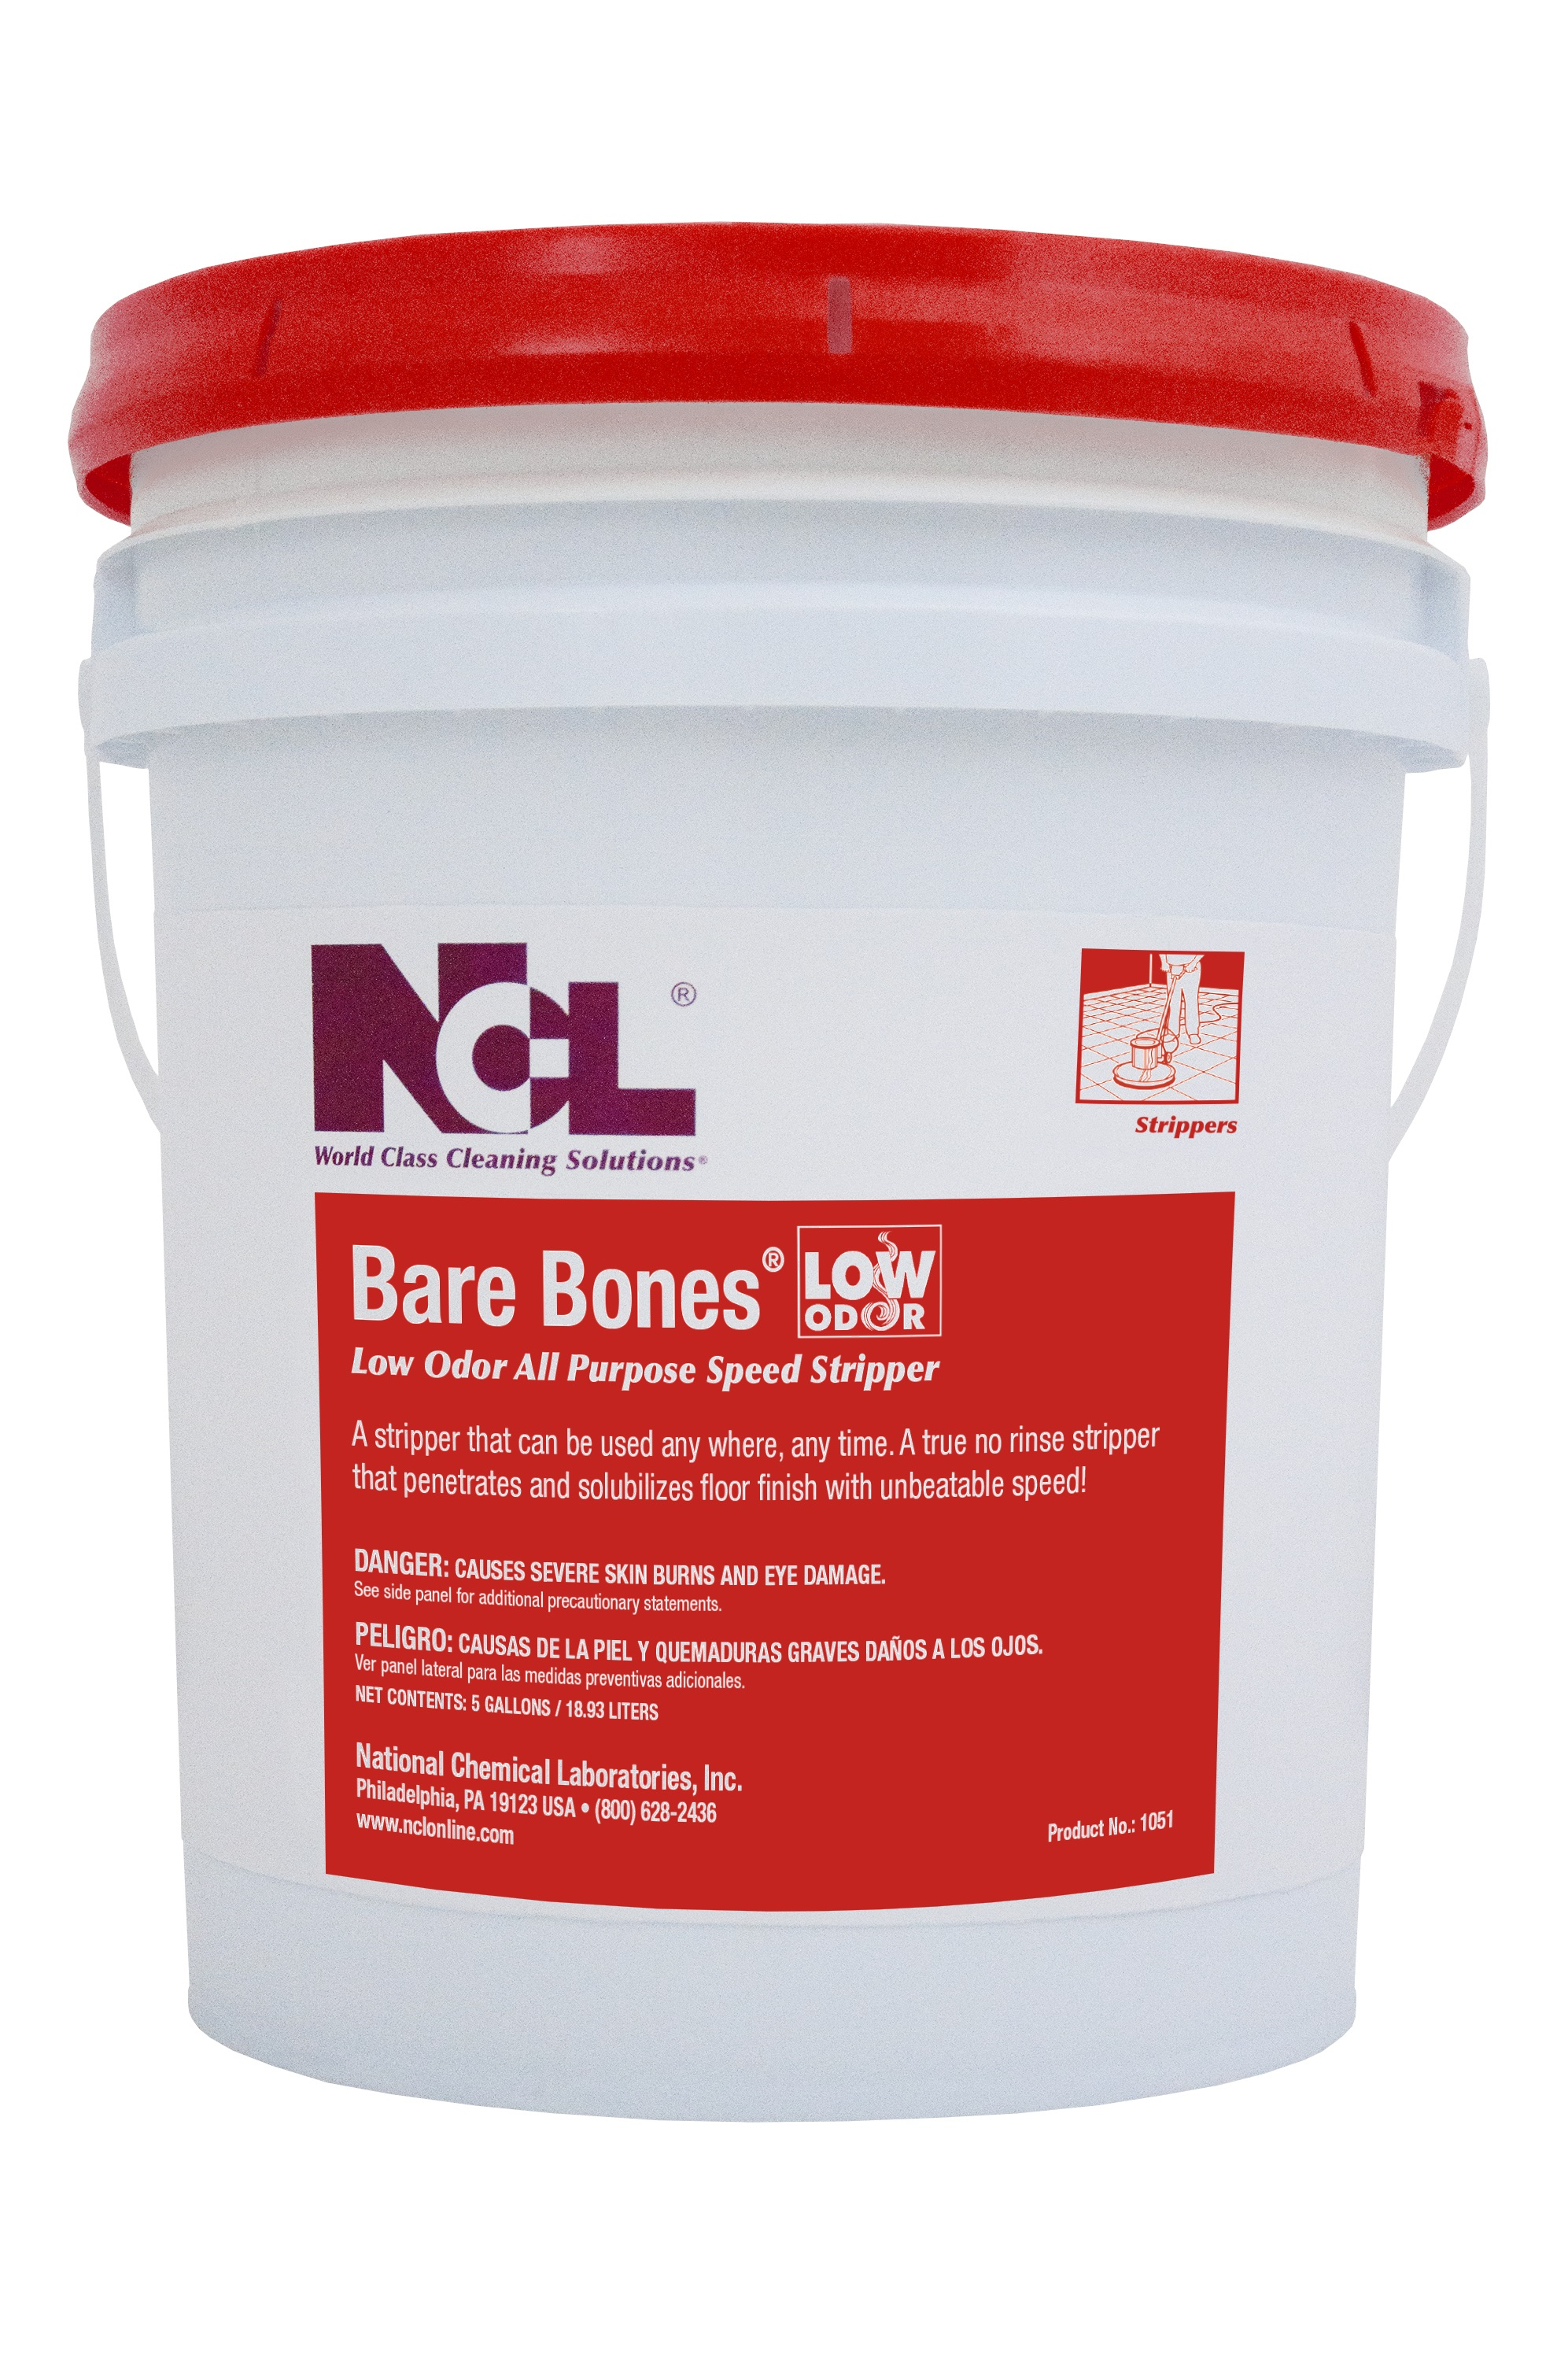 NCL Bare Bones No-Rinse Low Odor All Purpose Speed